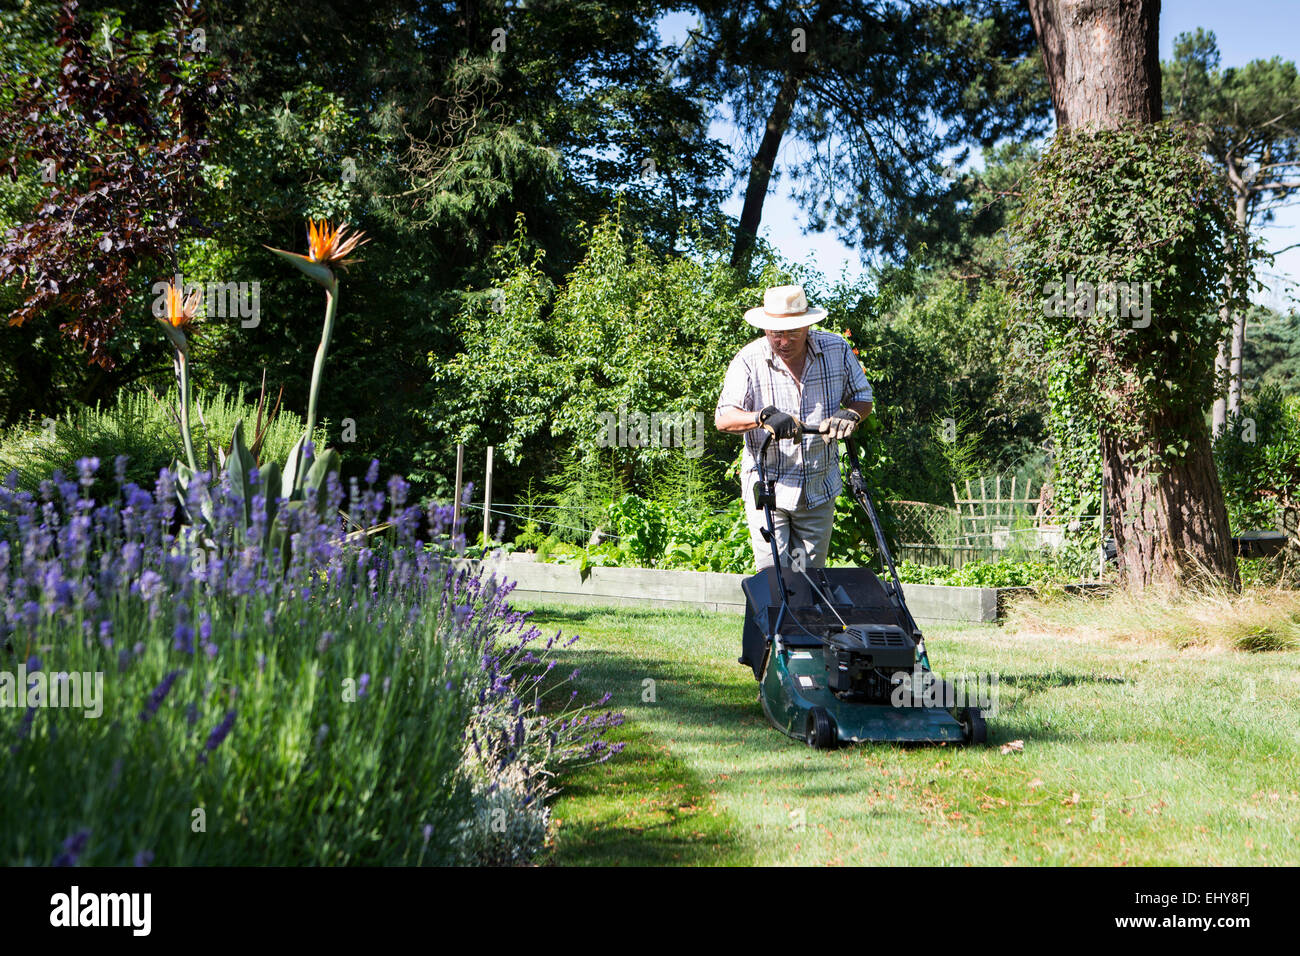 Senior man mows garden lawn, Bournemouth, County Dorset, UK, Europe - Stock Image